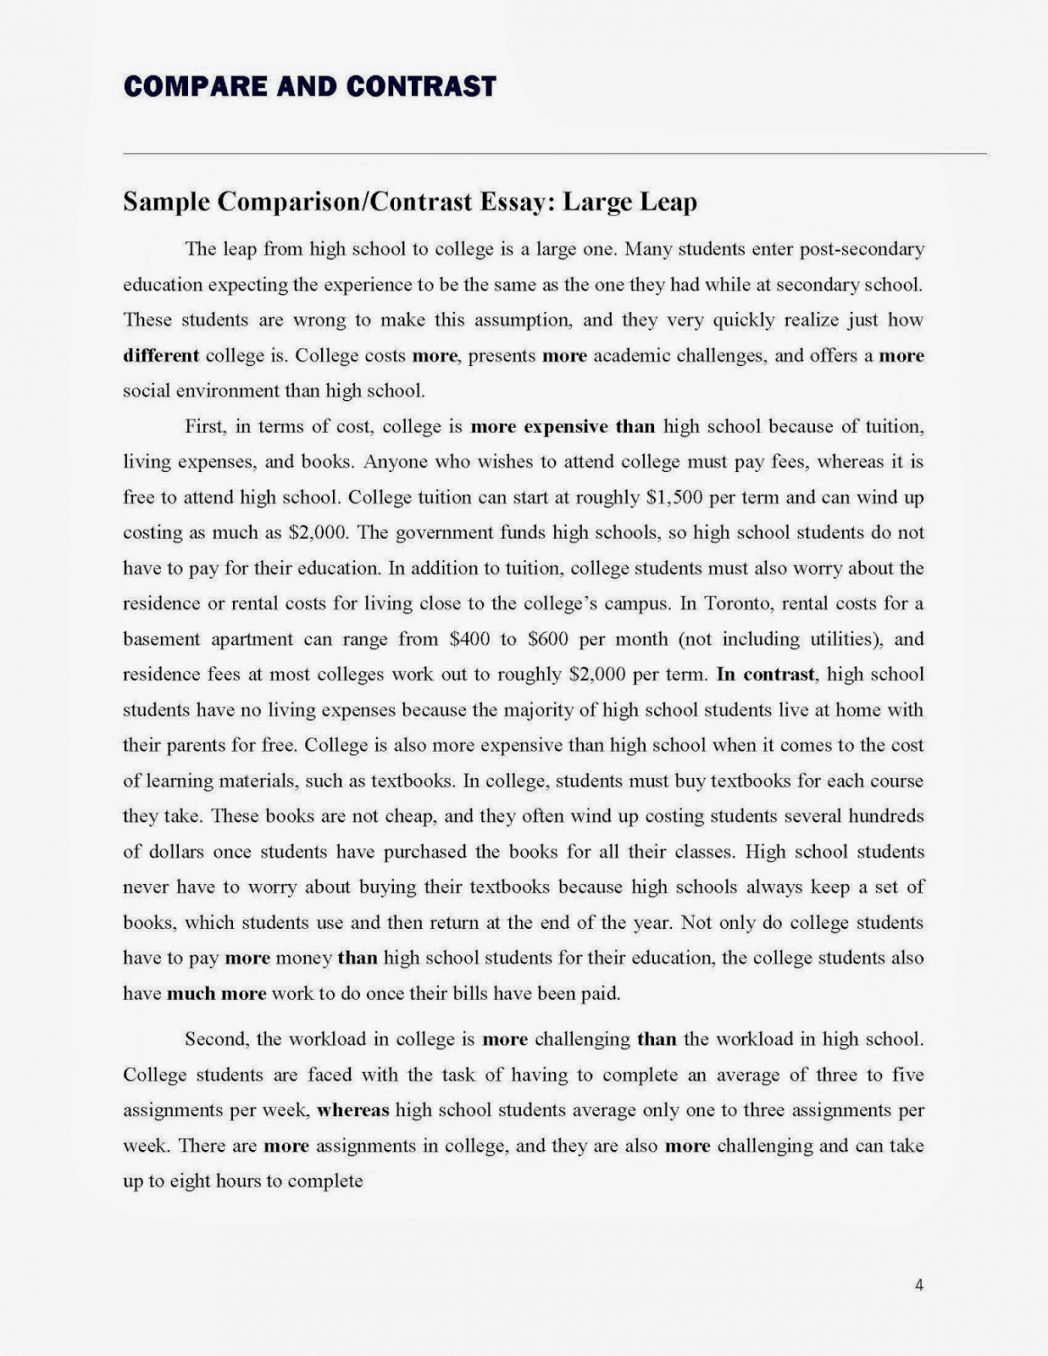 Essay Thesis Statement  English As A Second Language Essay also Buy Essay Papers Online  Virginia Tech College Essay Oedipus Rex Questions The  Example Of An Essay With A Thesis Statement